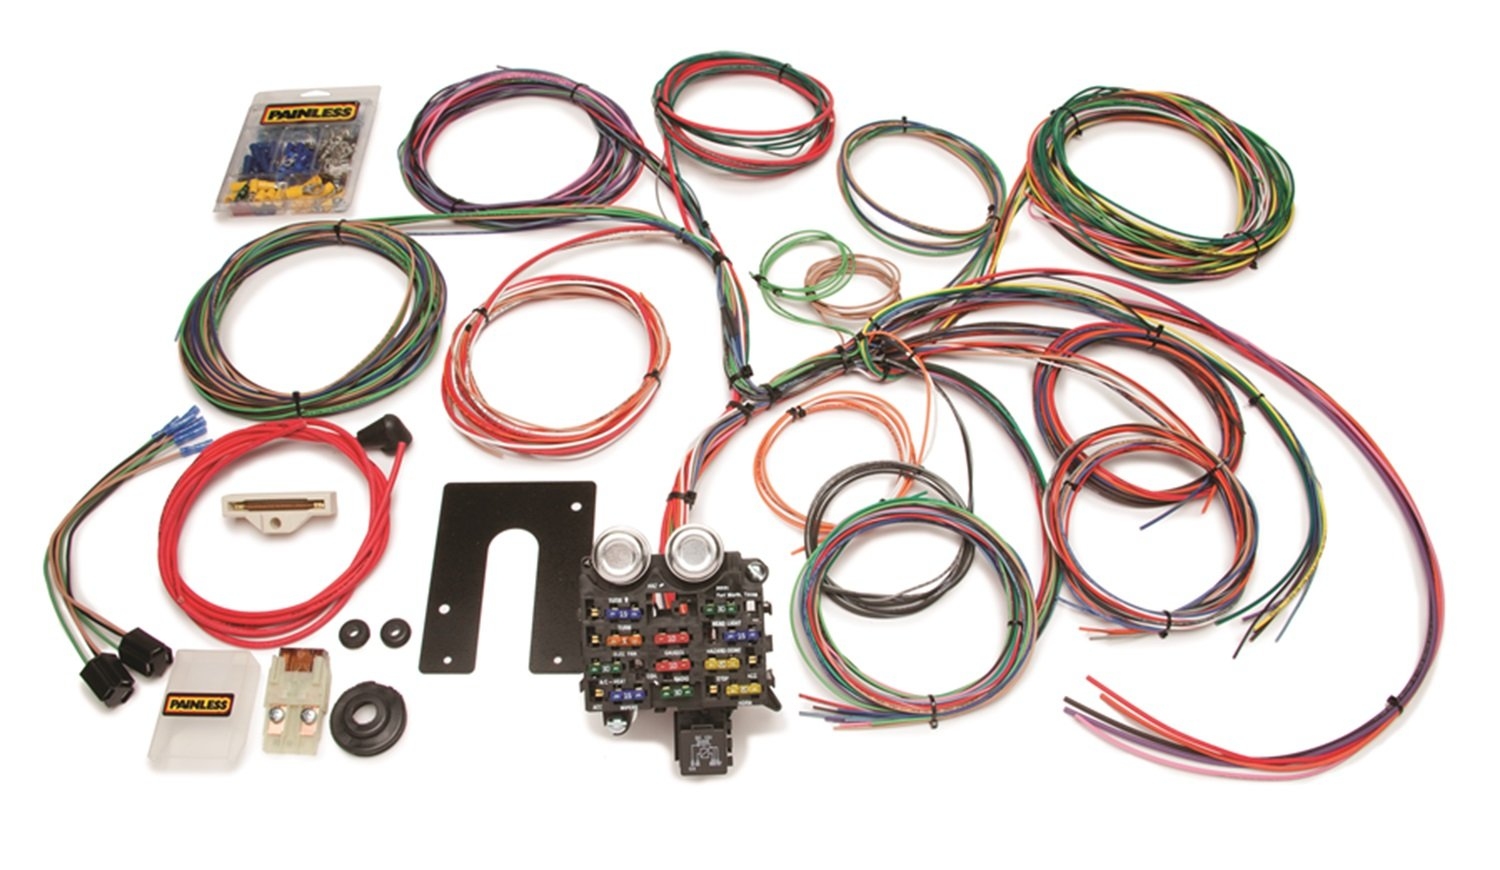 Amazoncom Painless Wire 10105 Wiring Harness with Firewall Grommet